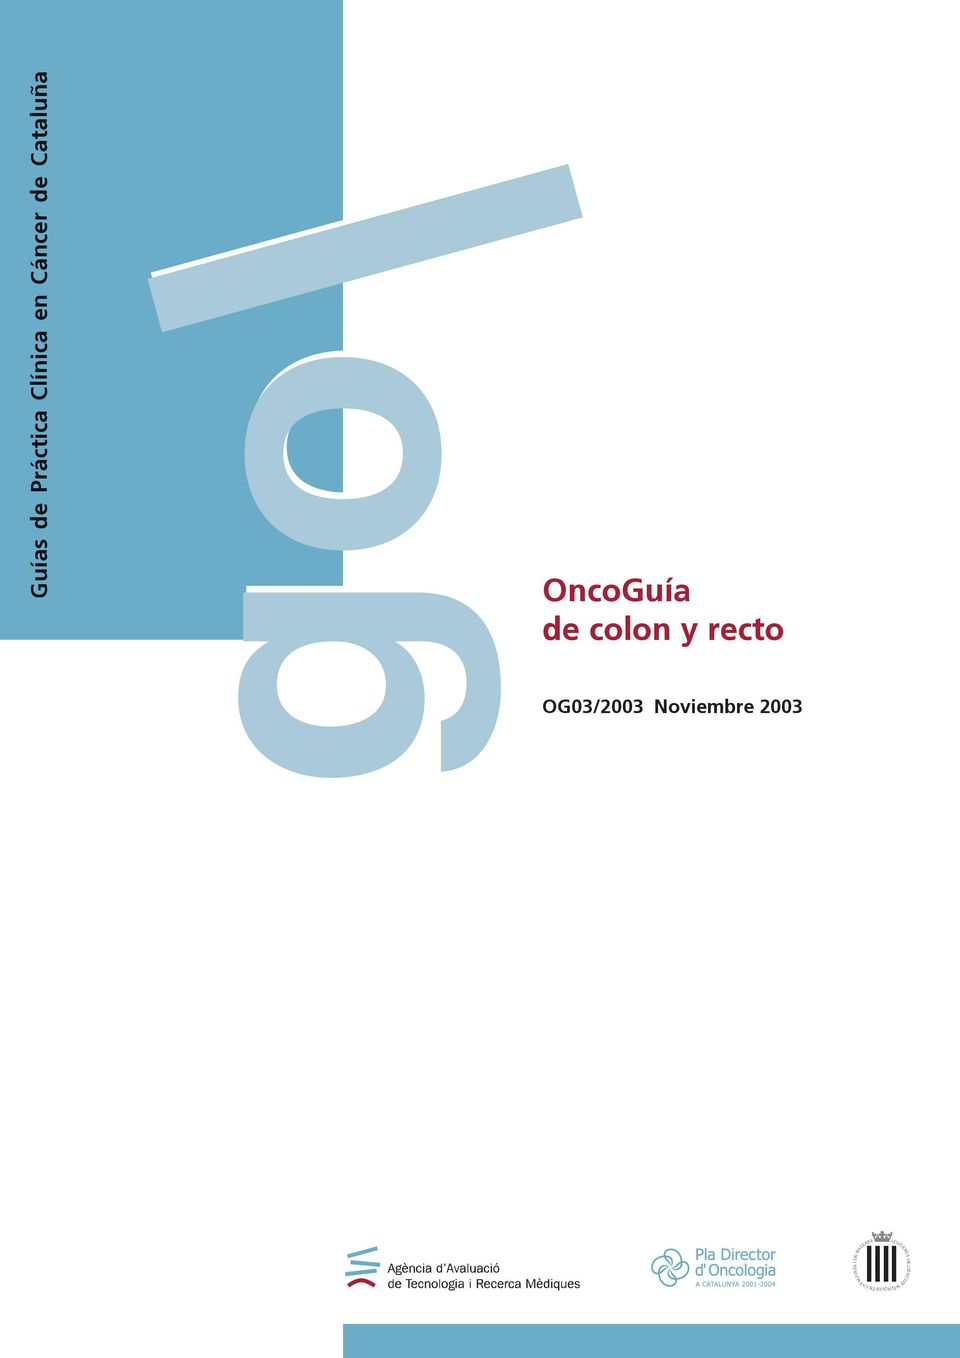 OncoGuía de colon y recto